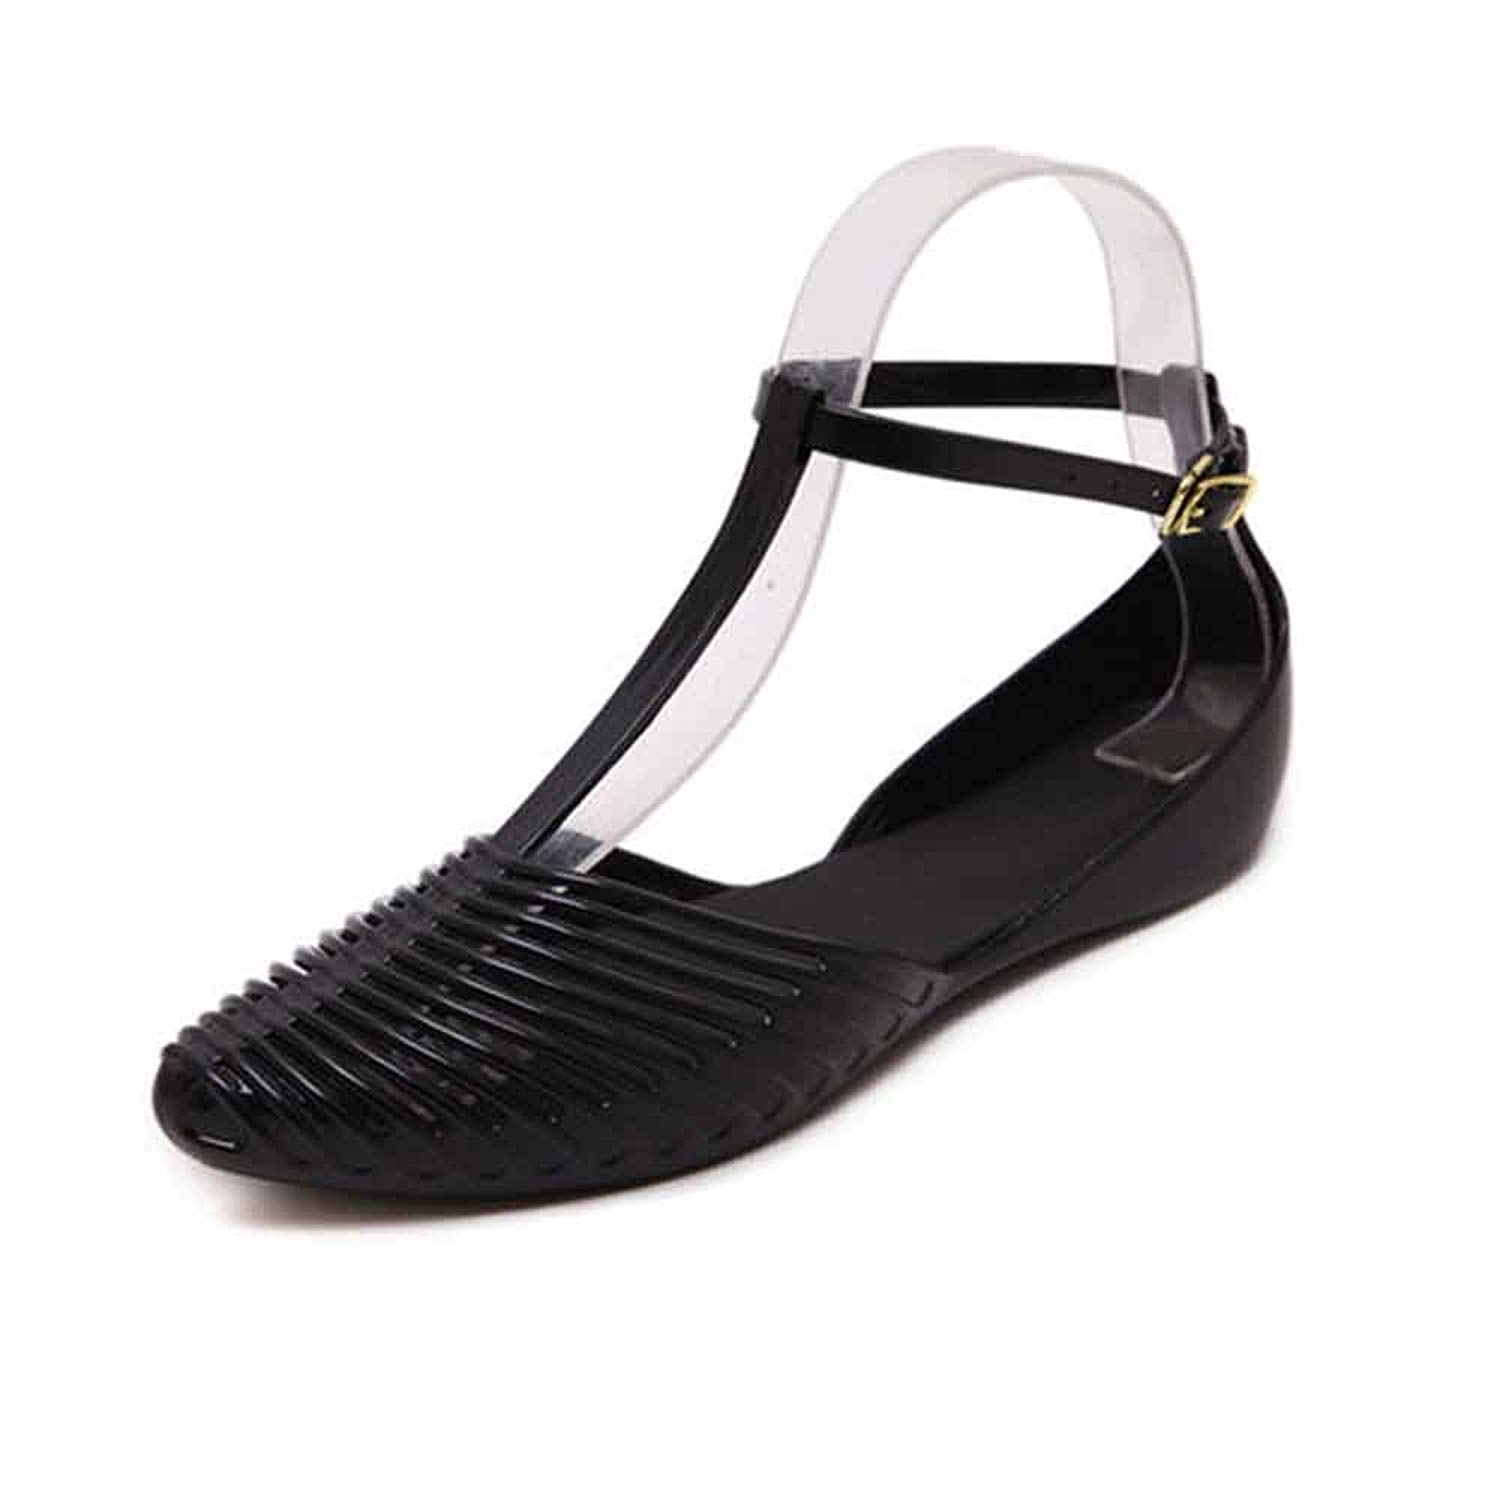 a595478fa1cf3 Get Quotations · LIURUIJIA Women s Sandals Lady Girl Sandals Summer Women  Casual Jelly Shoes Sandals HollowGL-SD-